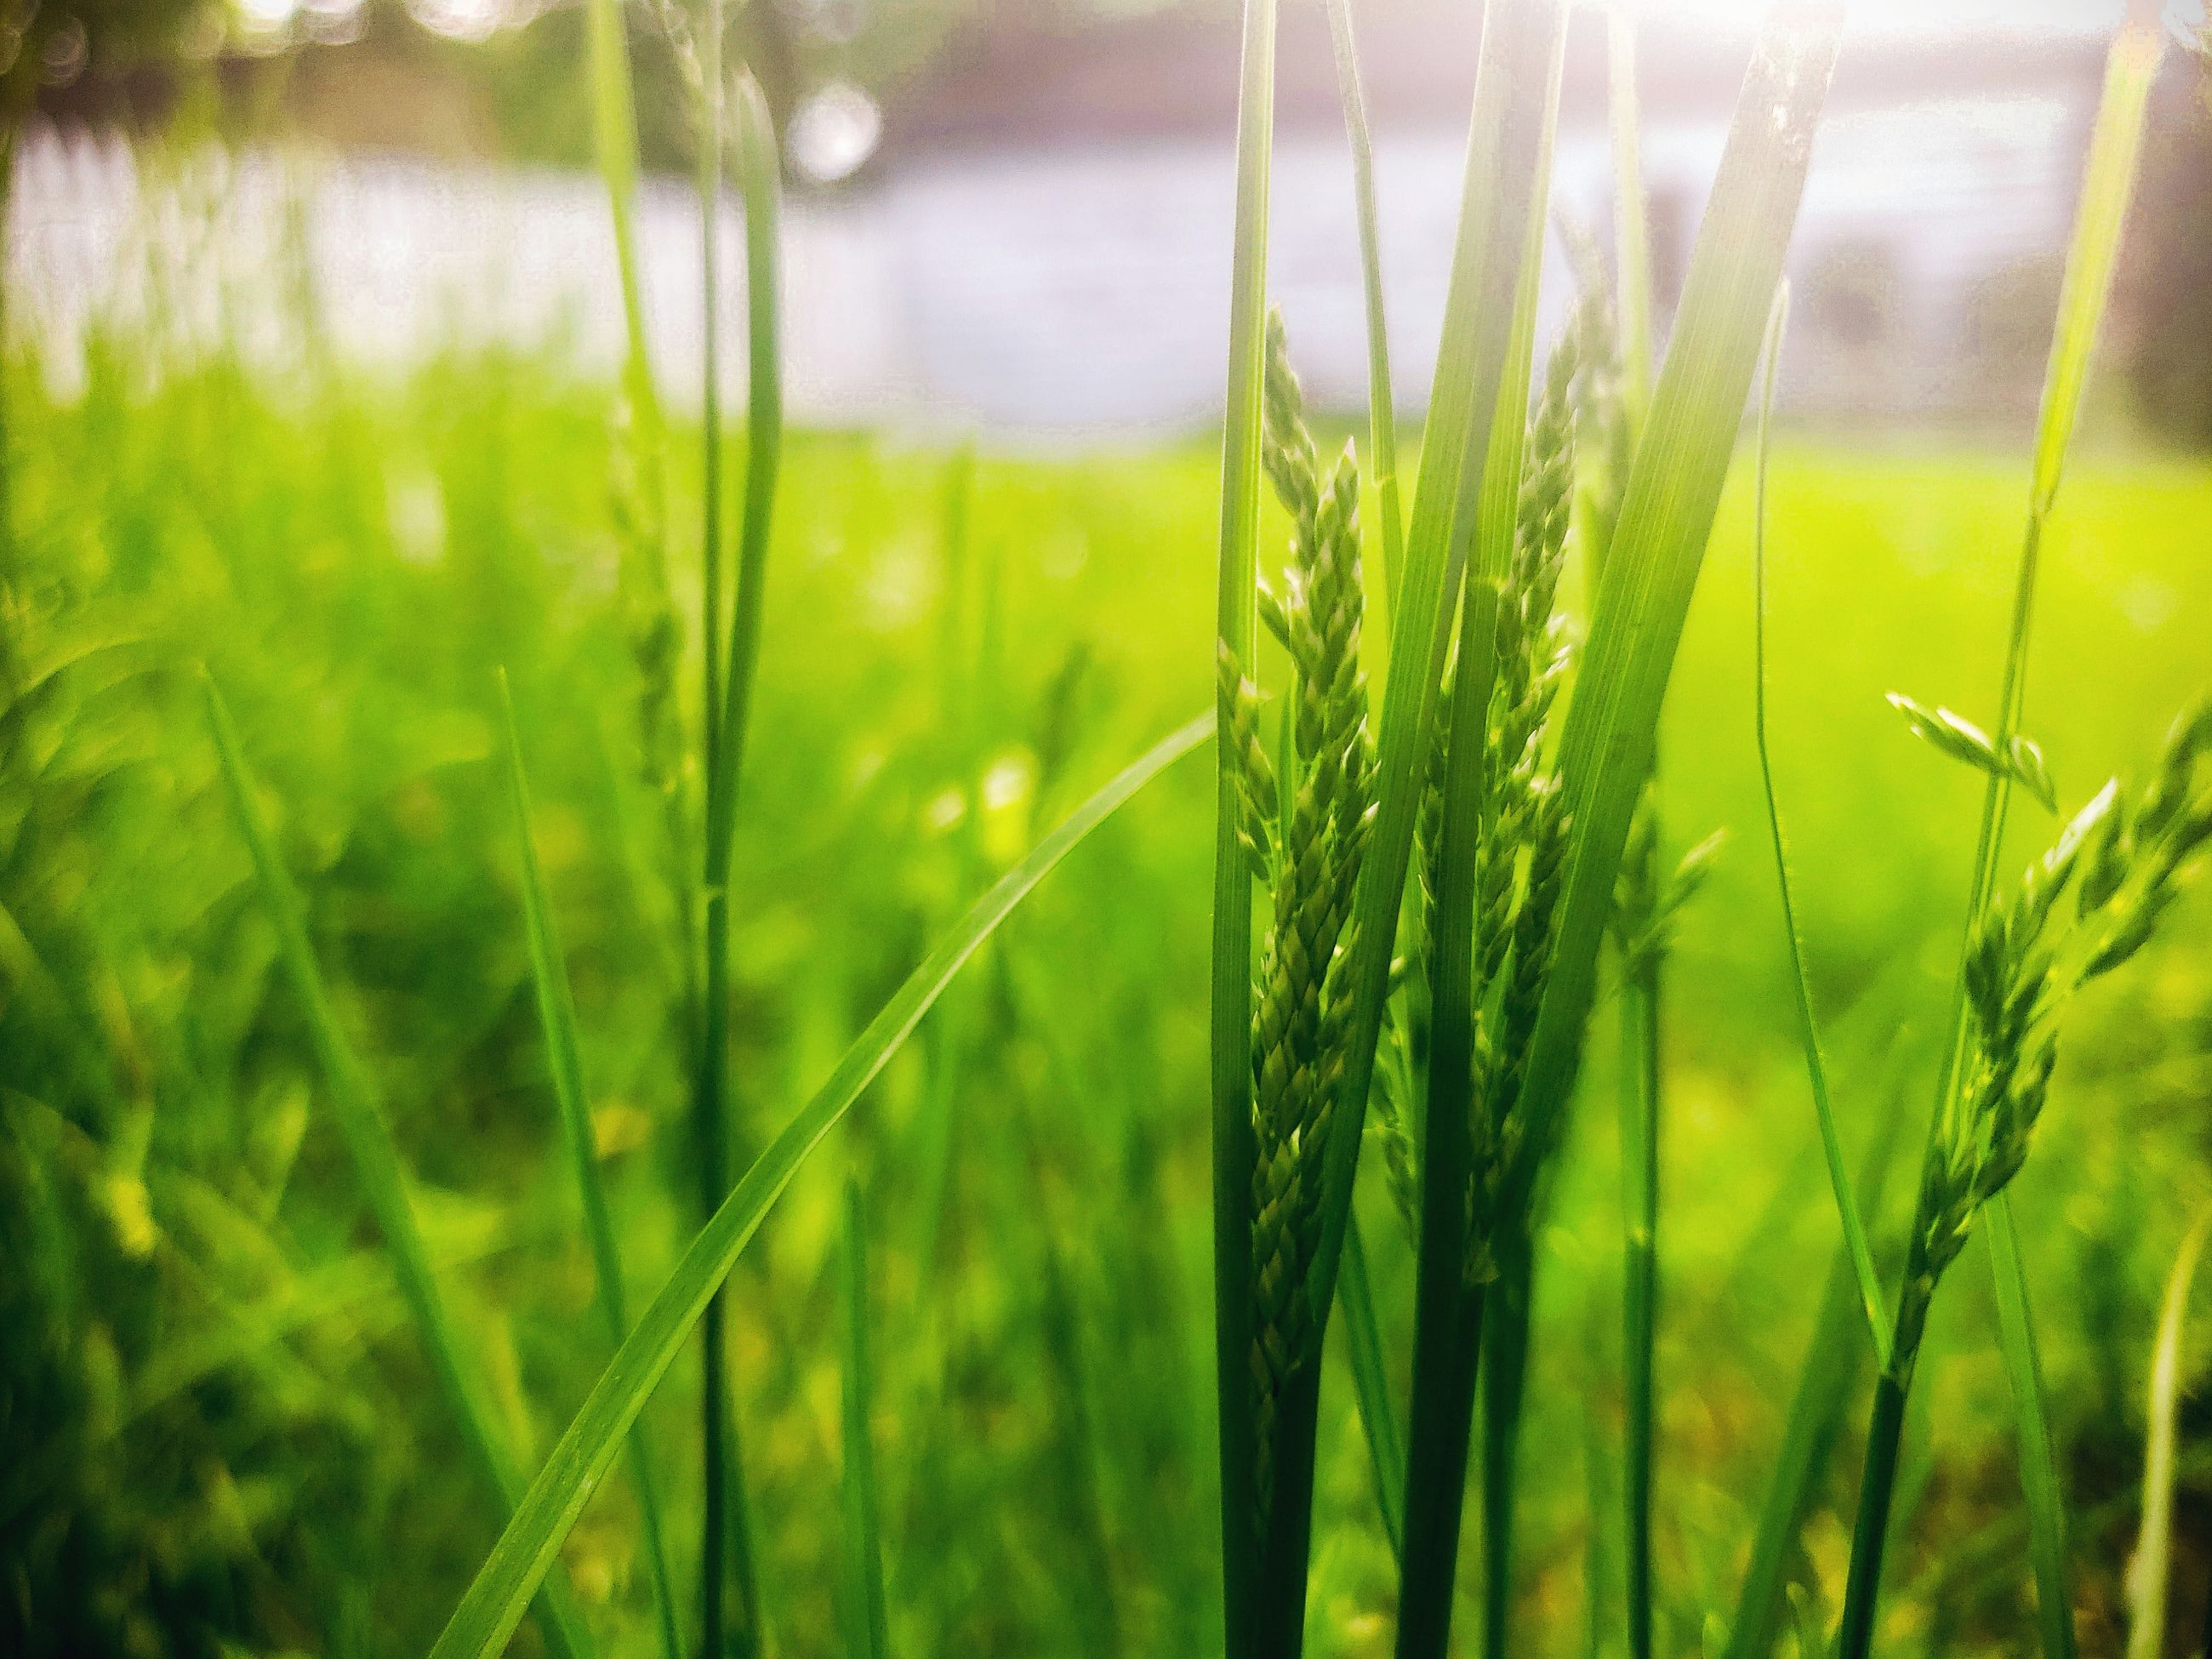 green color, plant, growth, land, field, beauty in nature, grass, agriculture, close-up, nature, focus on foreground, crop, no people, day, tranquility, farm, rural scene, landscape, cereal plant, freshness, blade of grass, outdoors